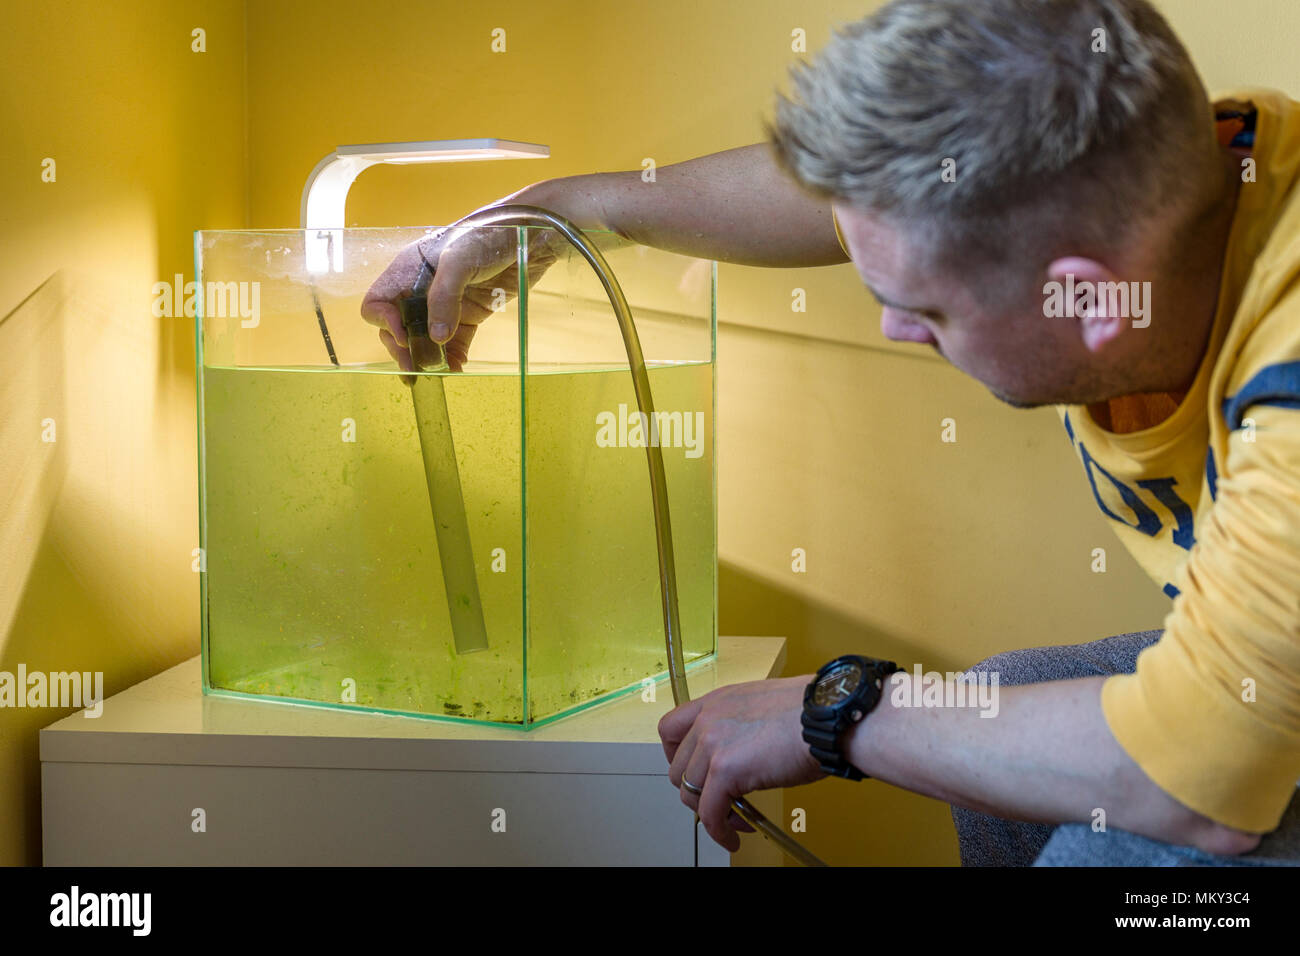 Adult caucasian male man cleaning fish tank glass from green algae using scrubber cleaning sponge  Model Release: Yes. Property Release: No. - Stock Image